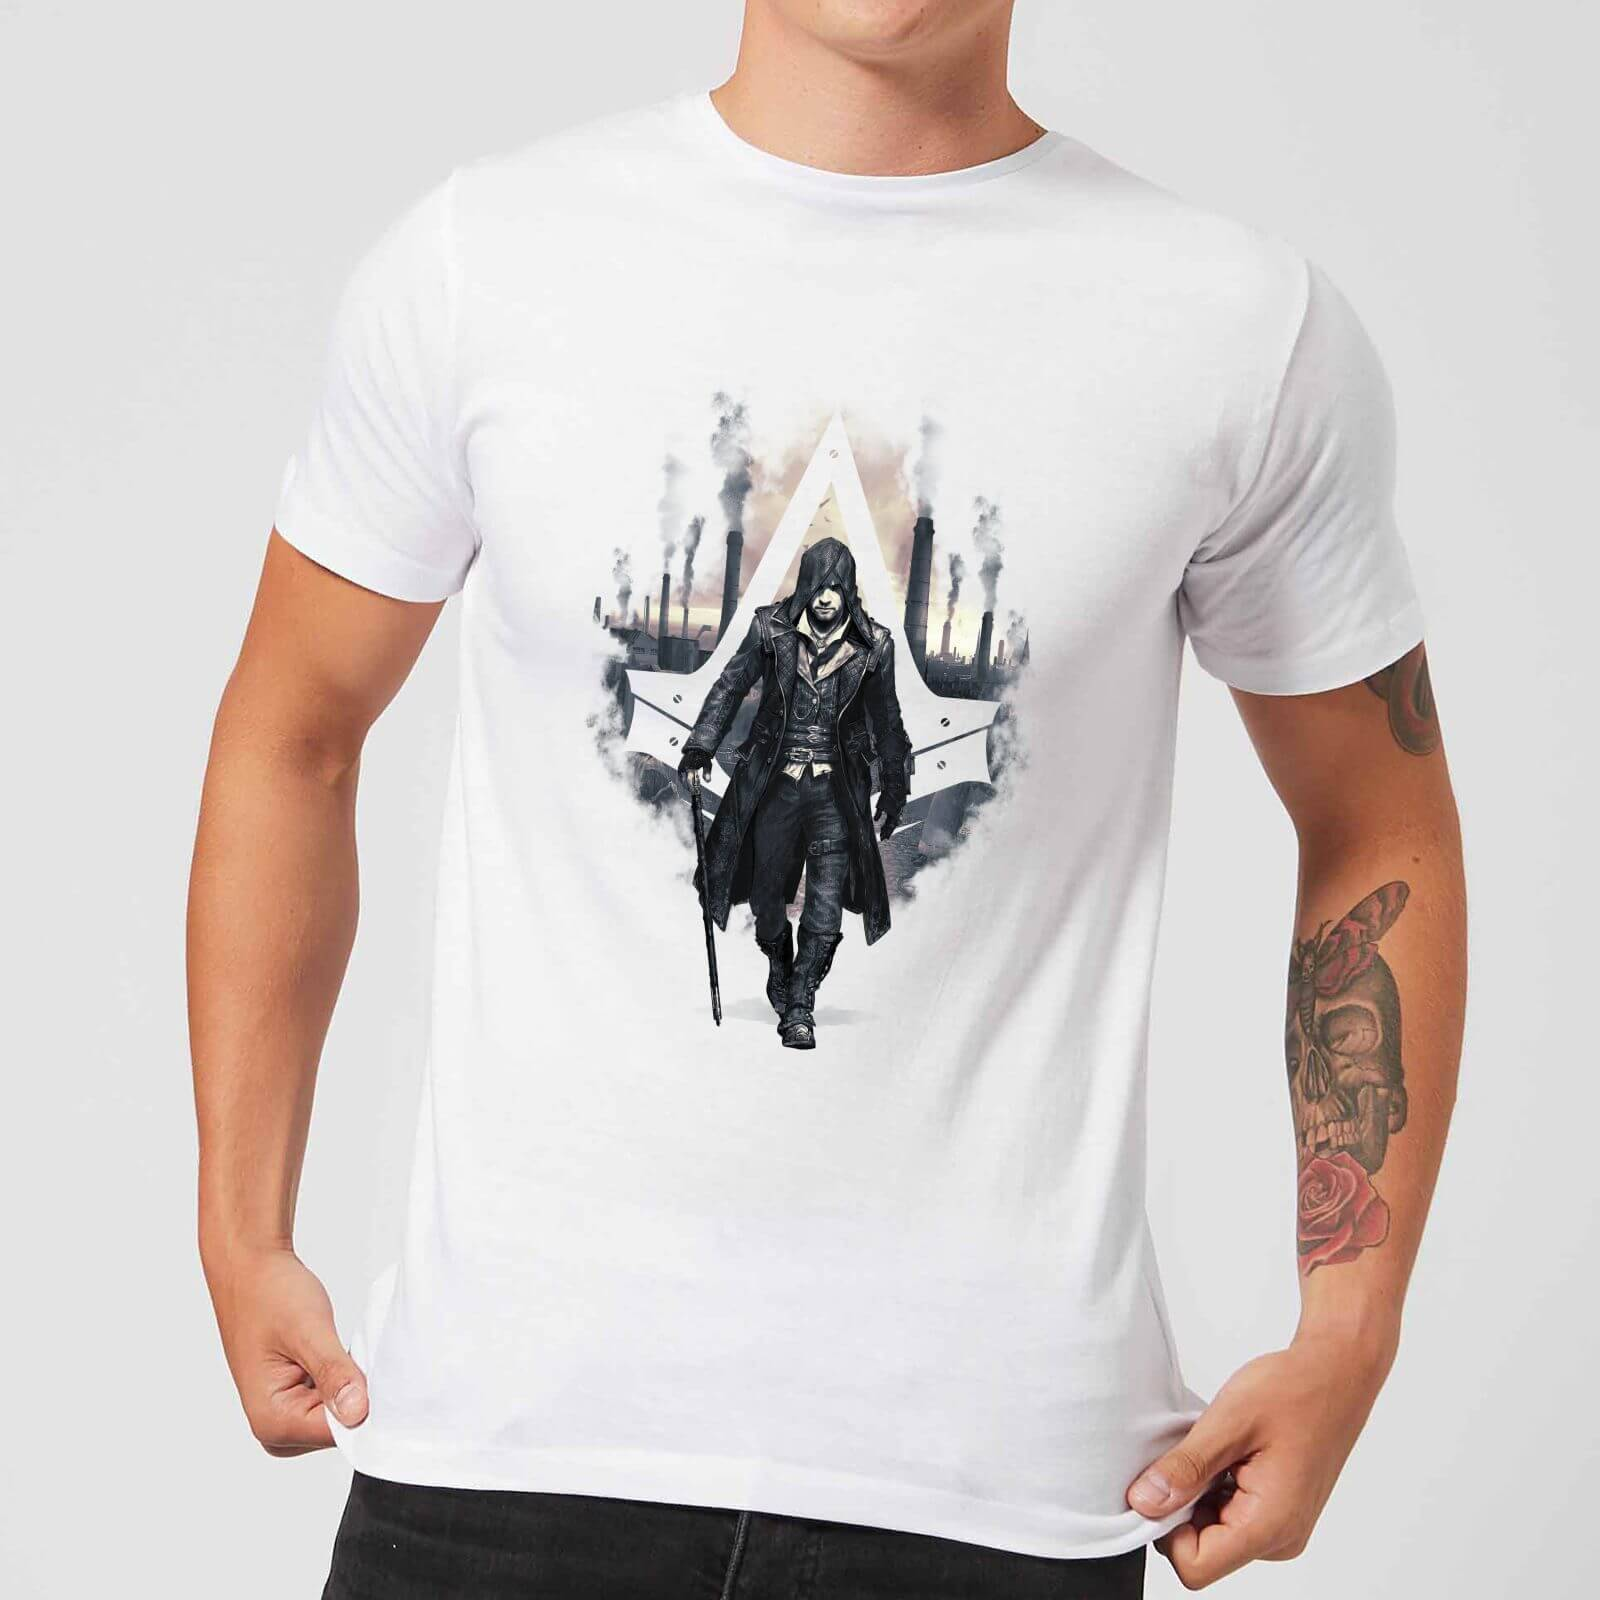 Assassin's Creed T-Shirt Homme London Skyline Assassin's Creed Syndicate - Blanc - S - Blanc